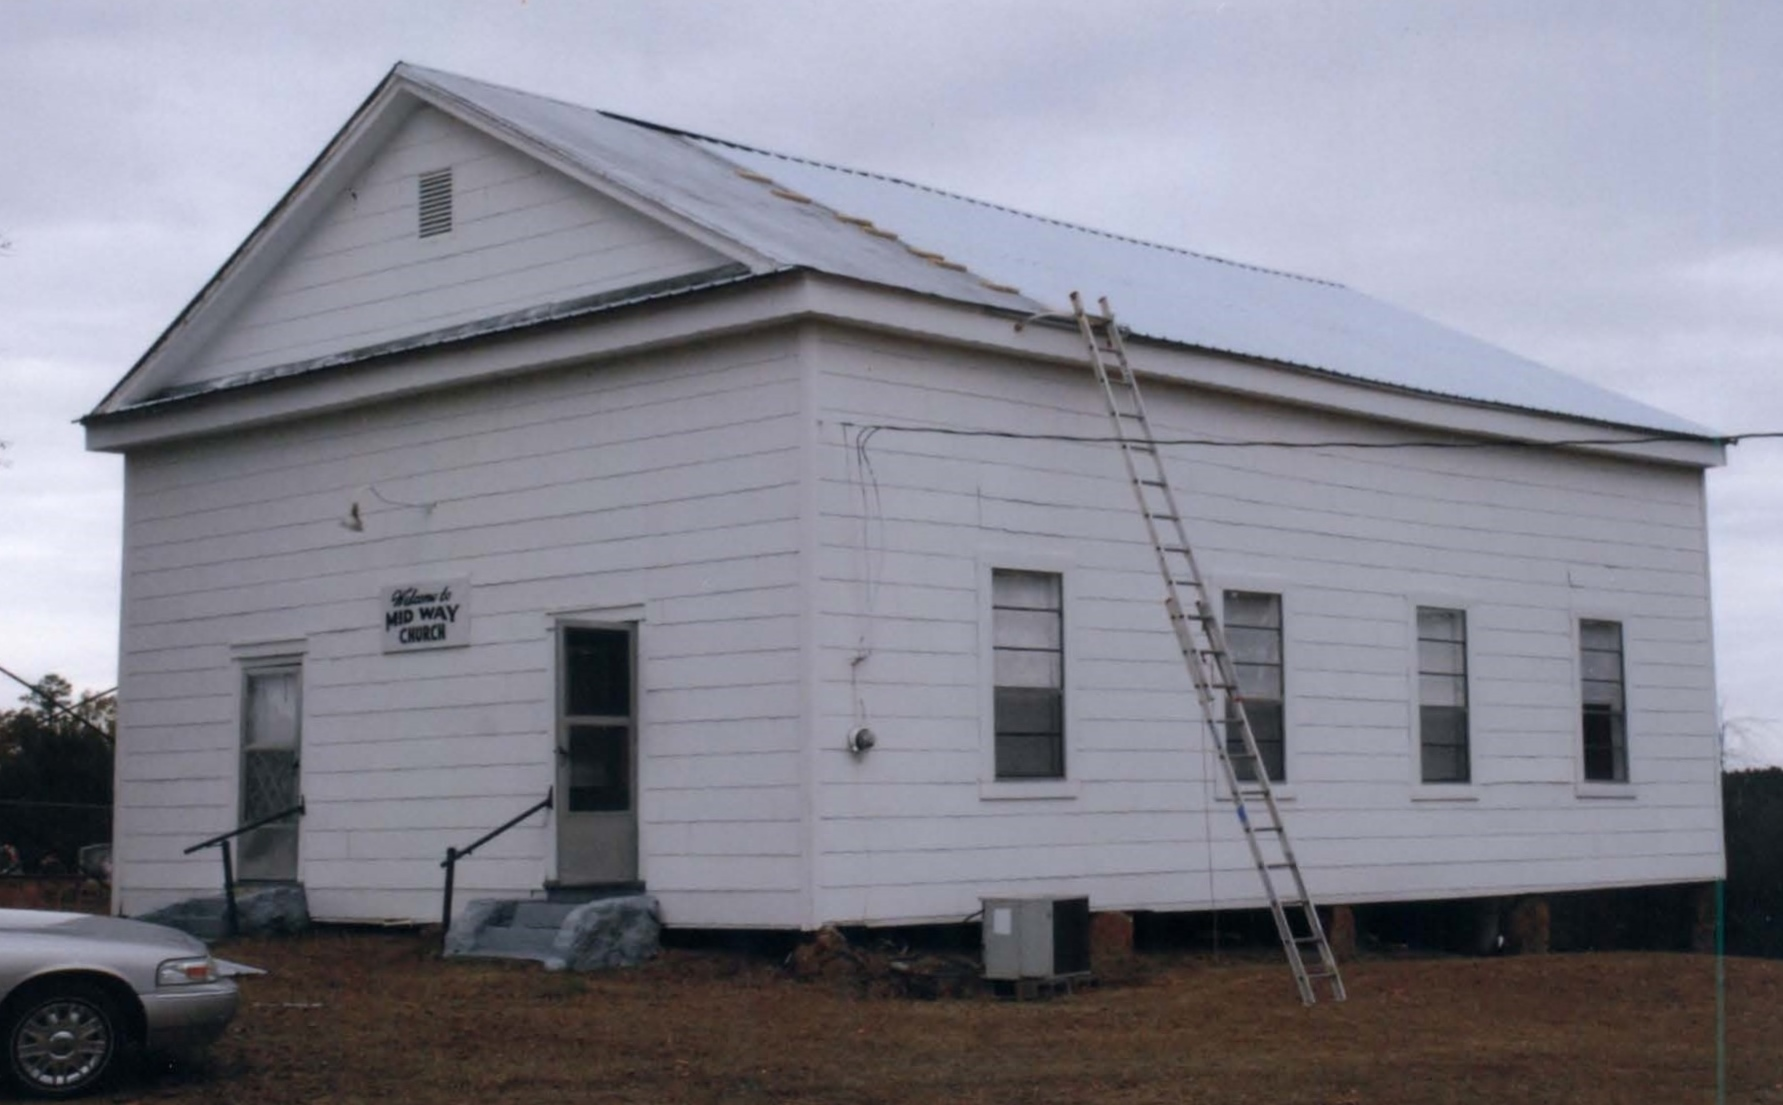 The Midway Church building in 2010 while it was being renovated.